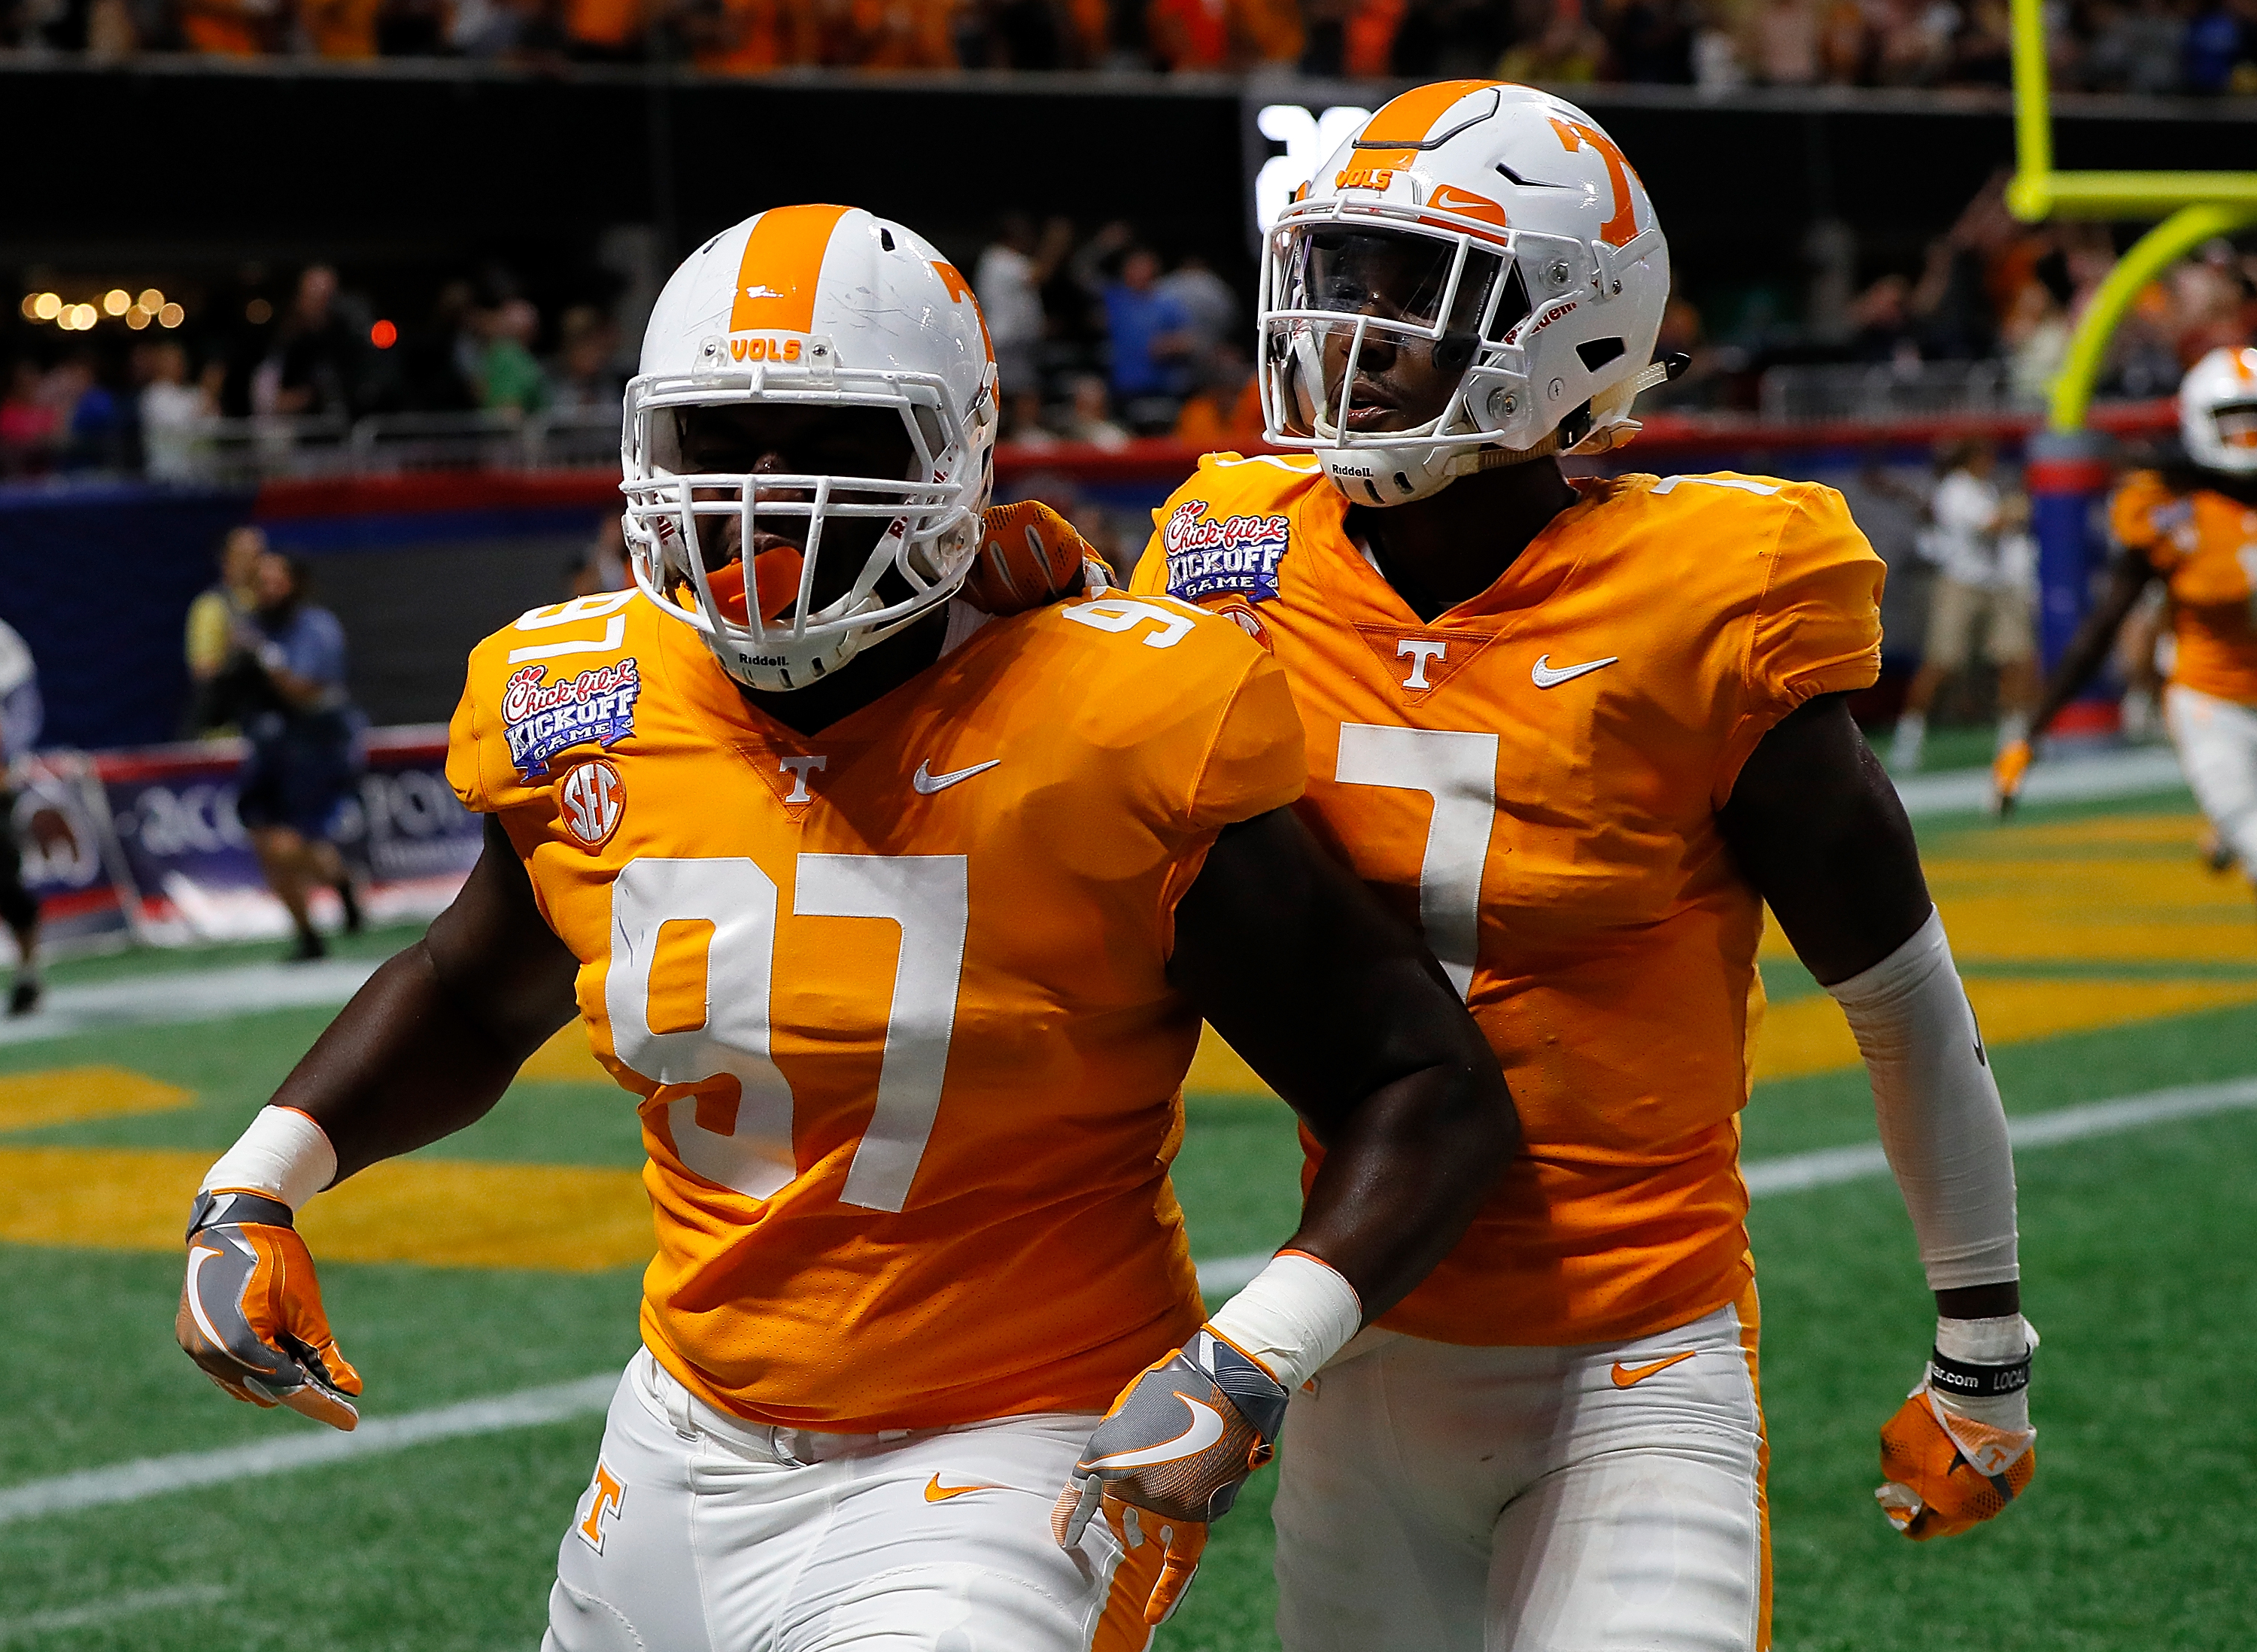 Turnovers doom Jackets in thrilling 2OT loss to Tennessee Volunteers